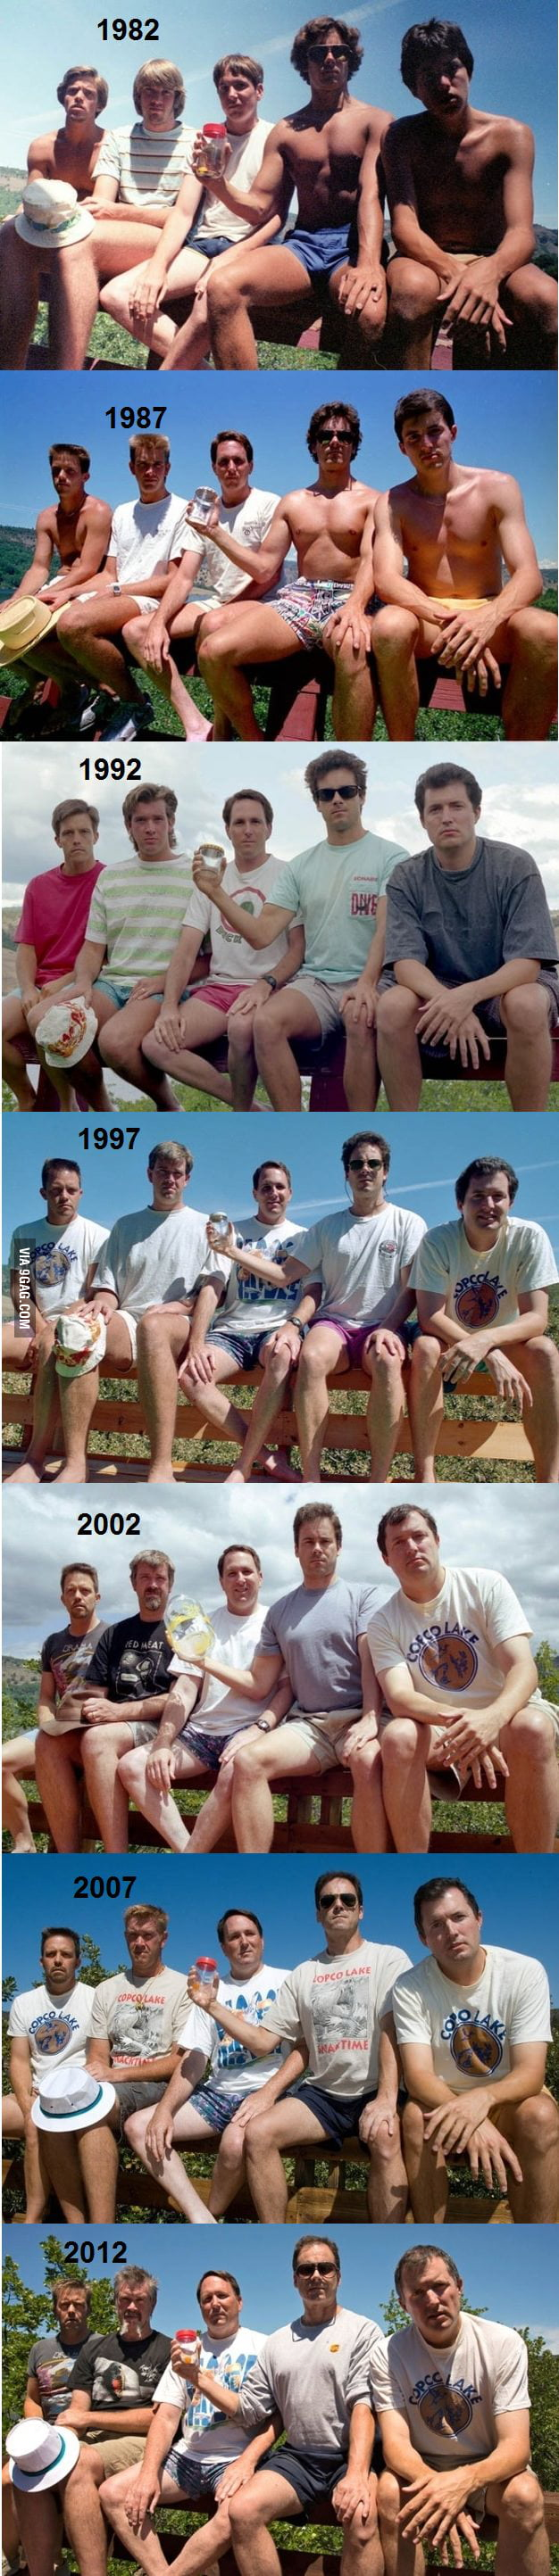 5 years for a photo... friends for lifetime